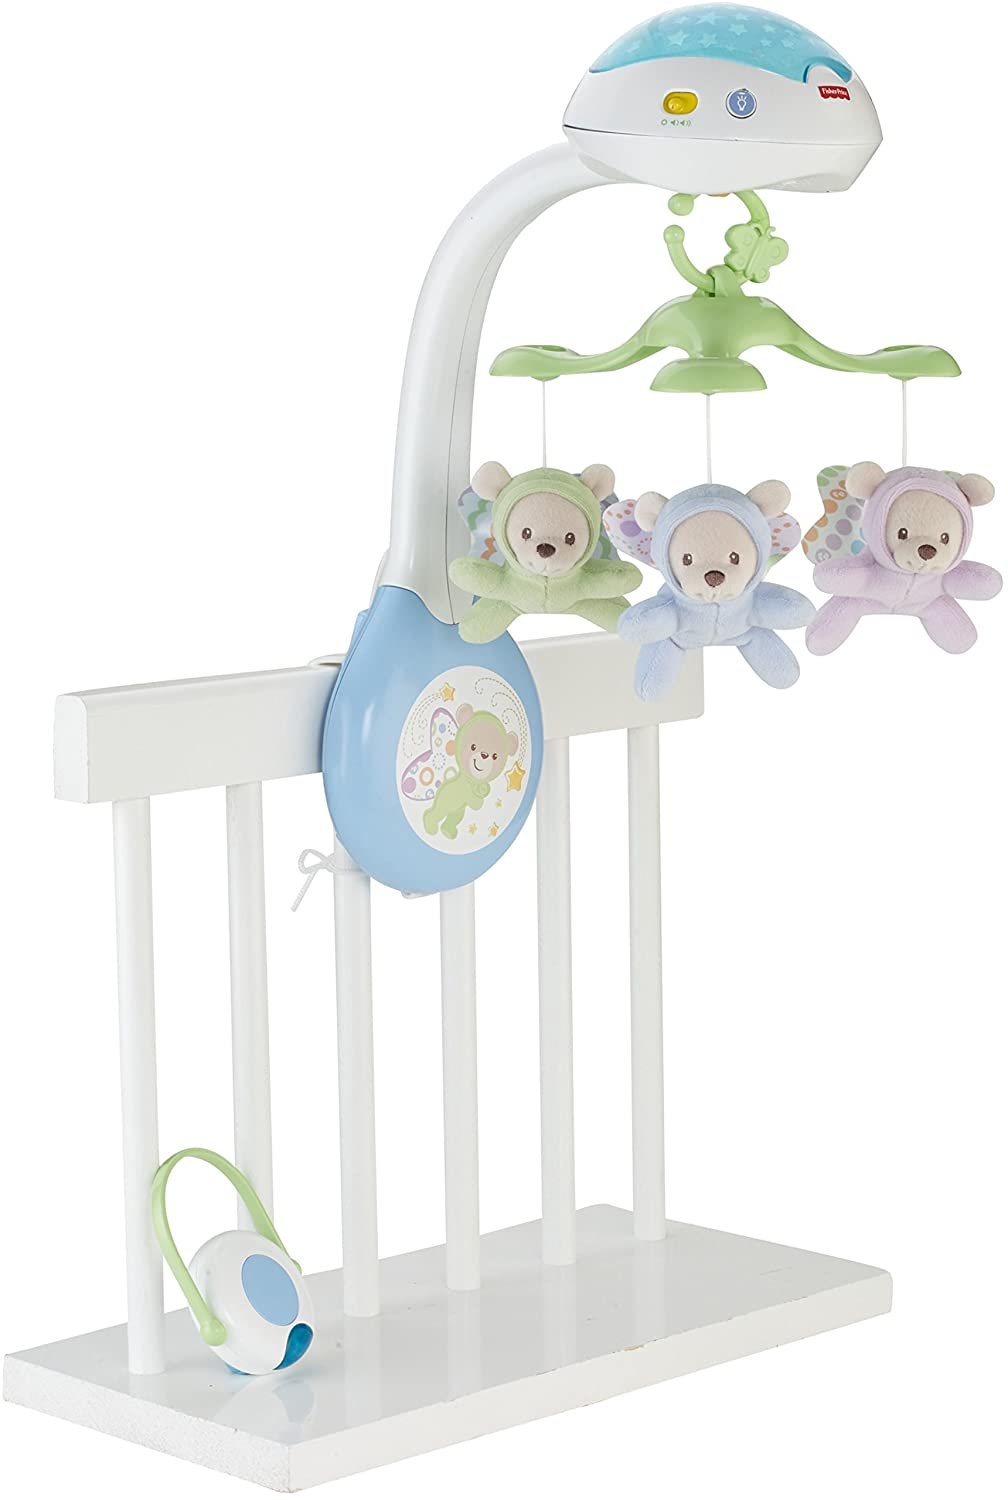 Fisher-Price Butterfly Dreams 3-in-1 Projection Mobile [Amazon Exclusive] CDN41